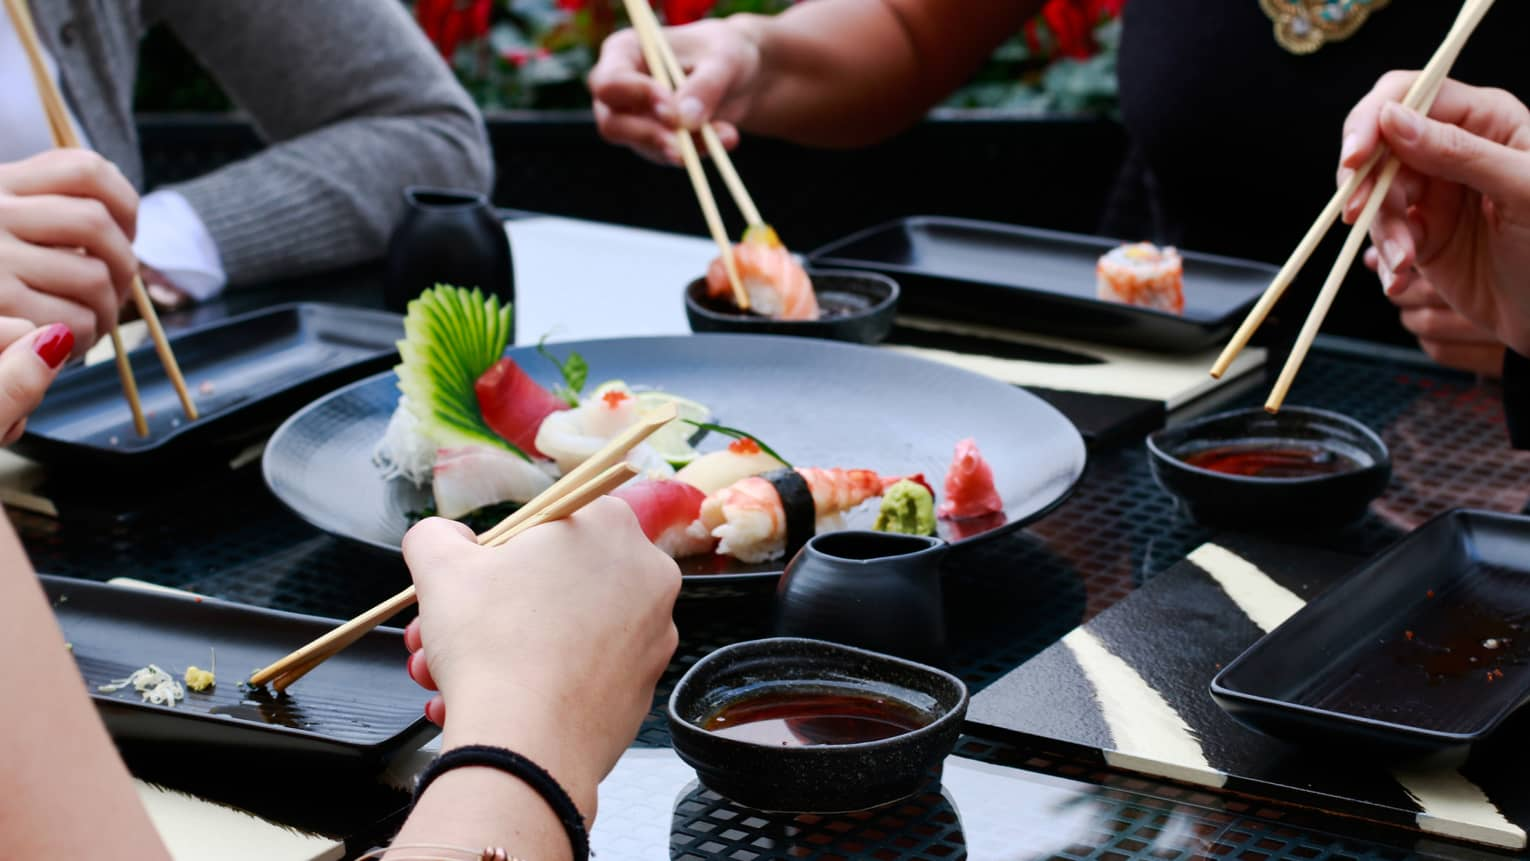 Close-up of four sets of hands holding chopsticks around black plate with sushi rolls, bowls of soy sauce